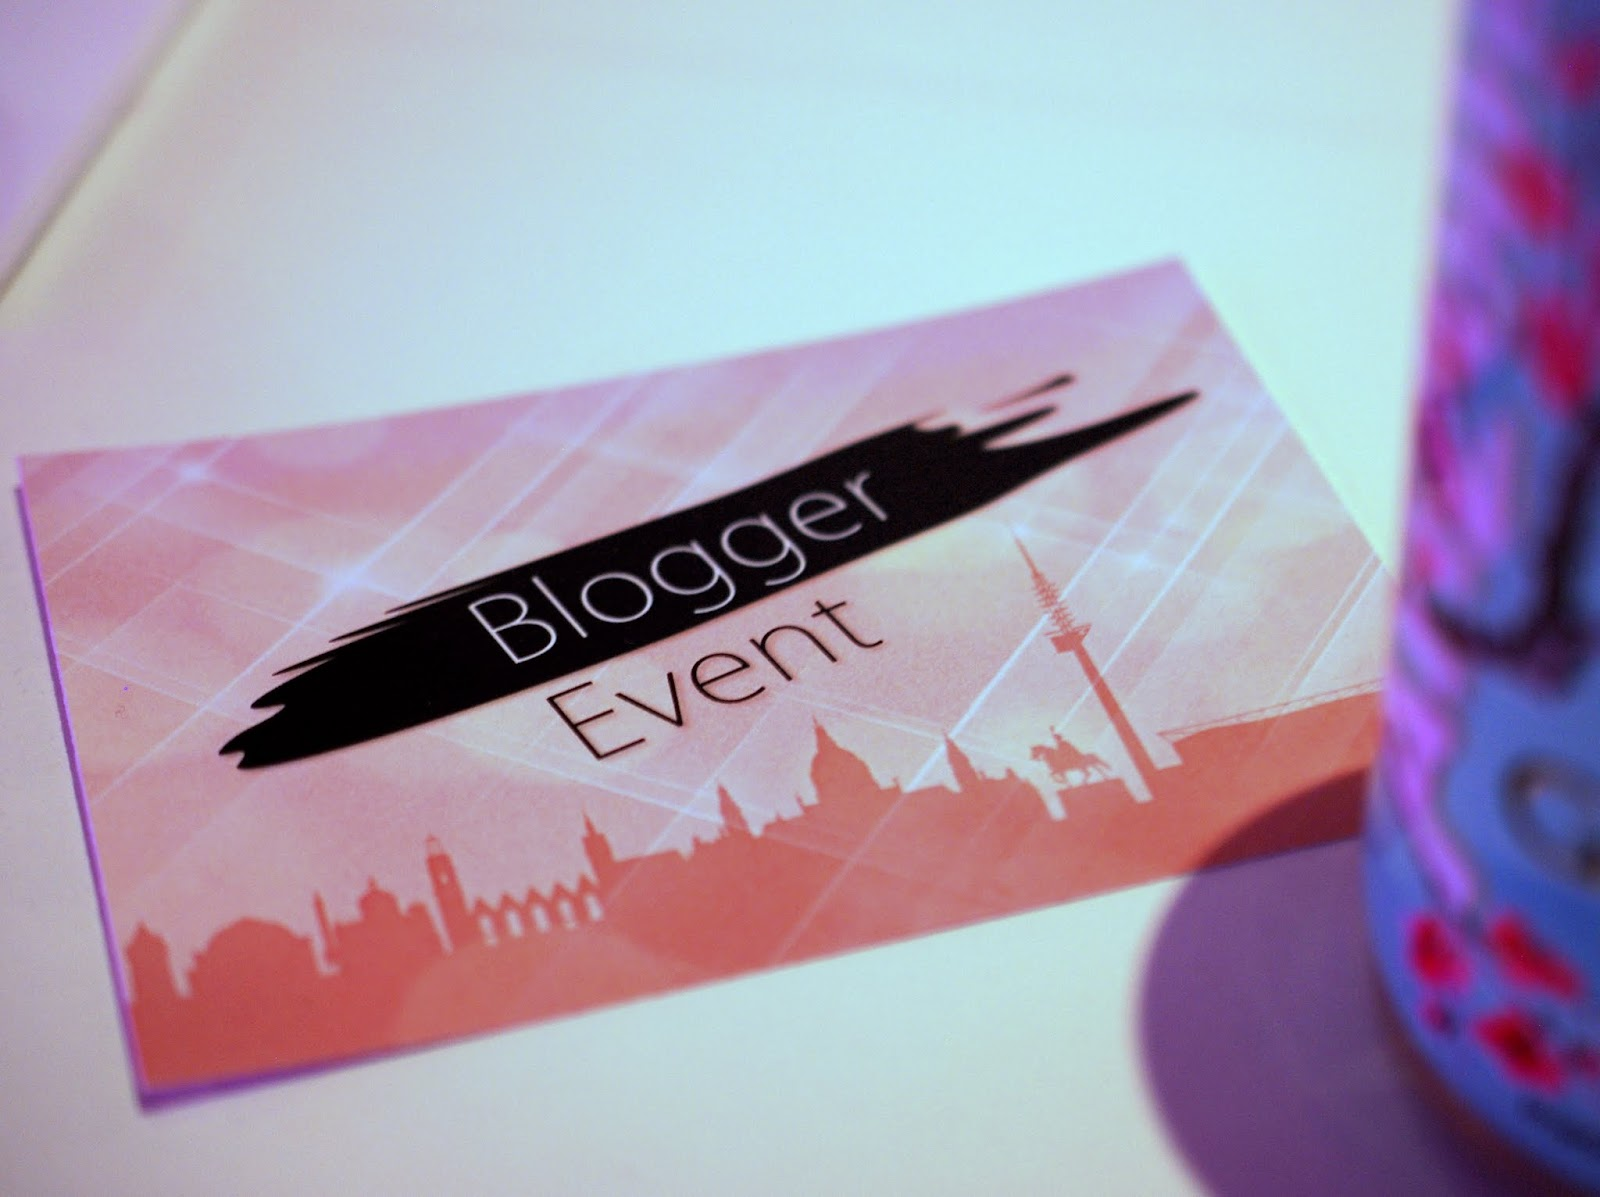 Rossmann Blogger Event in Hannover